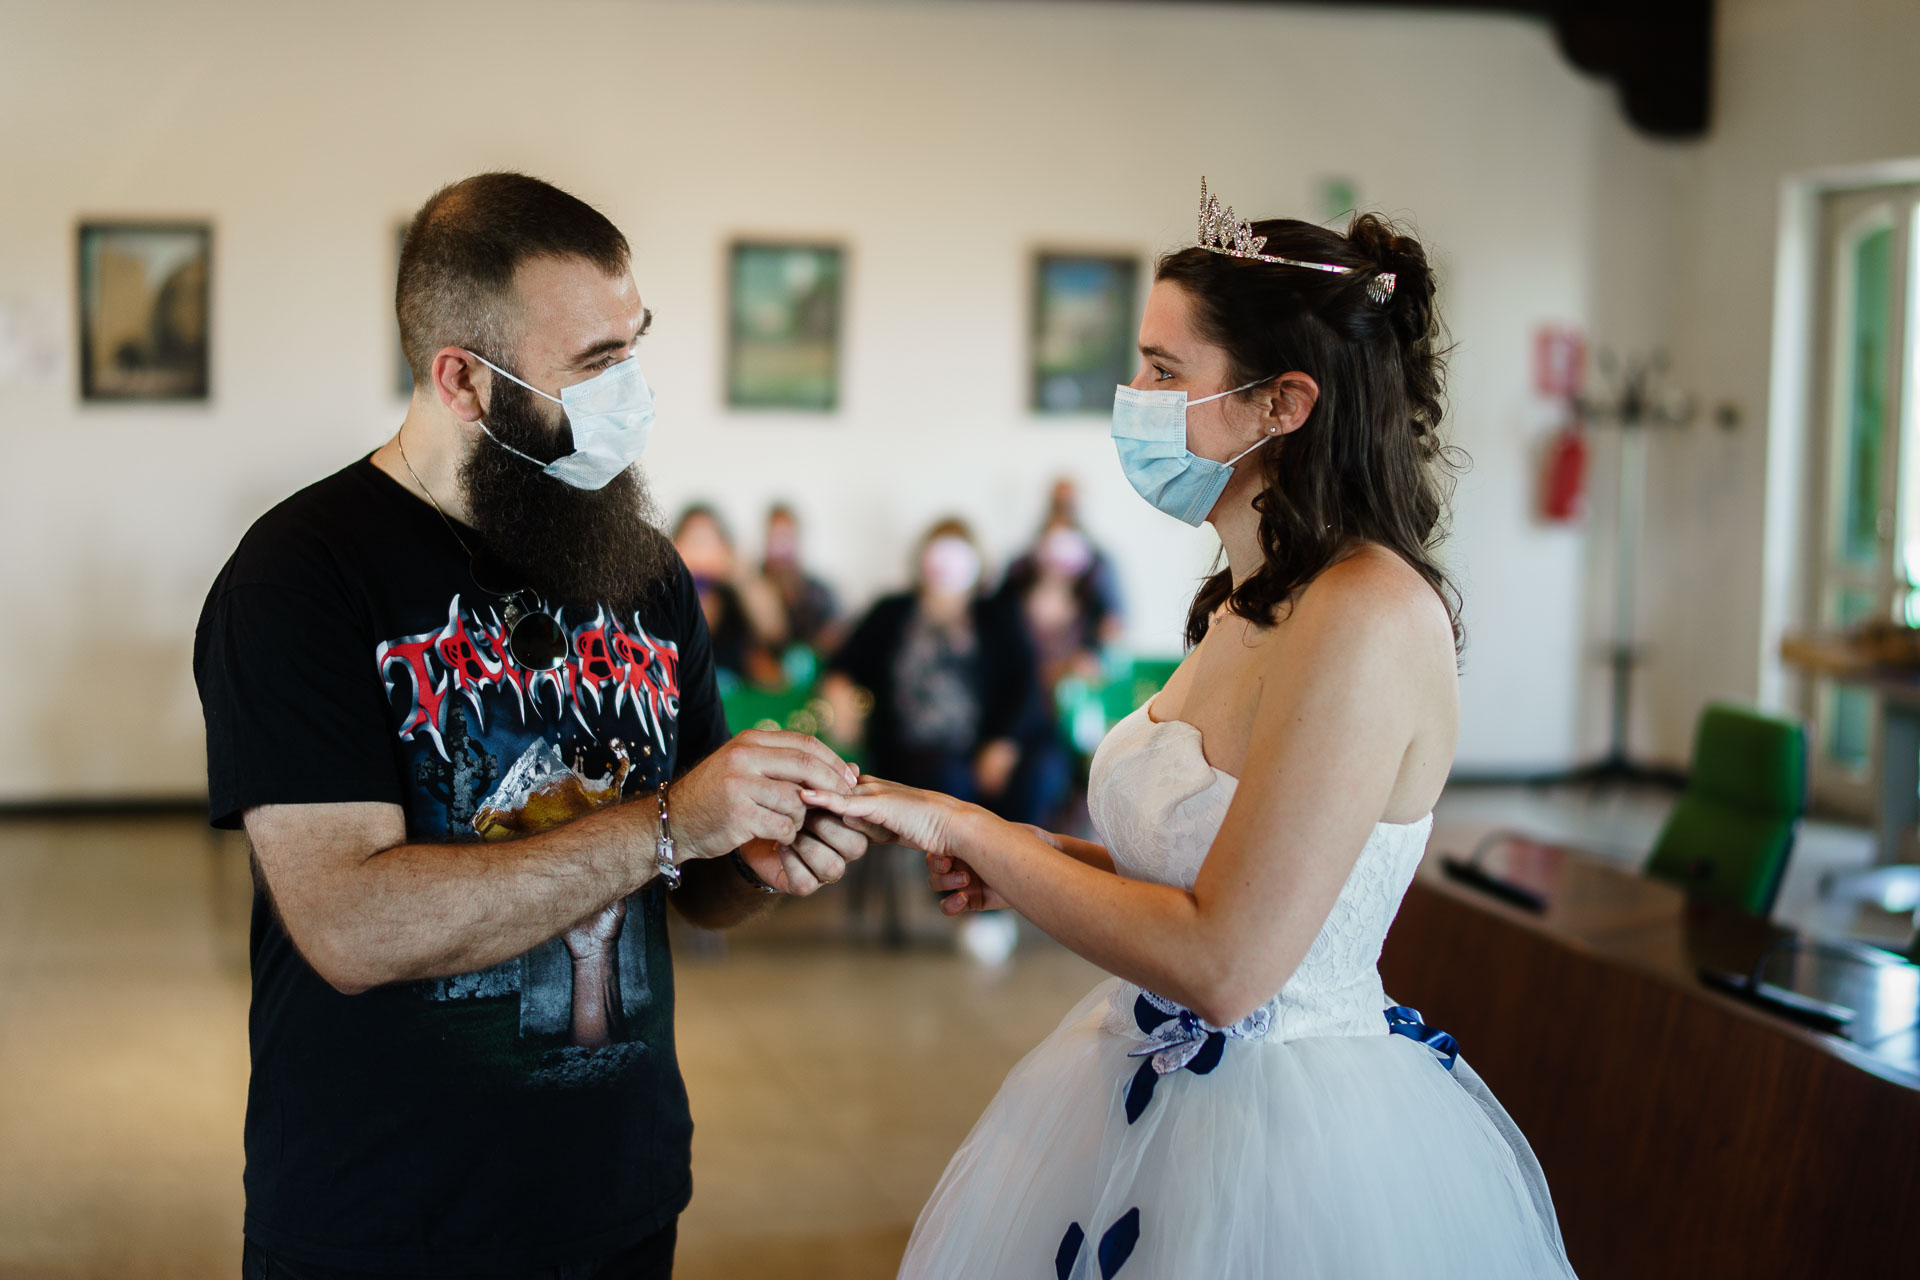 Castegnato City Hall, Italy Wedding Ceremony Photo | The face masks have been hiding the smiles of the bride and groom